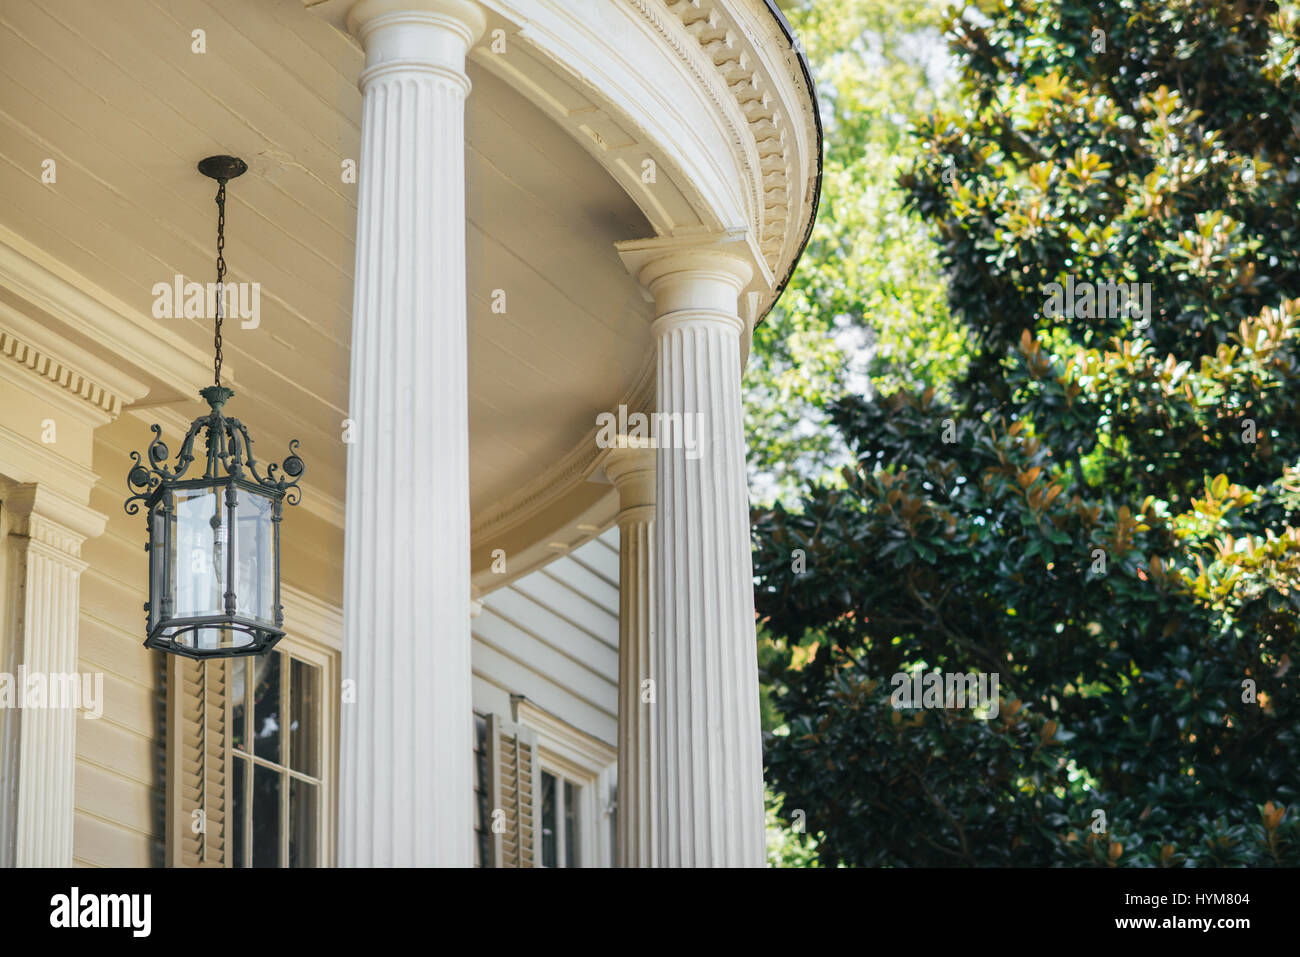 Outdoor Lighting Fixture And Columns Of A Historic Charleston Home In South Ina